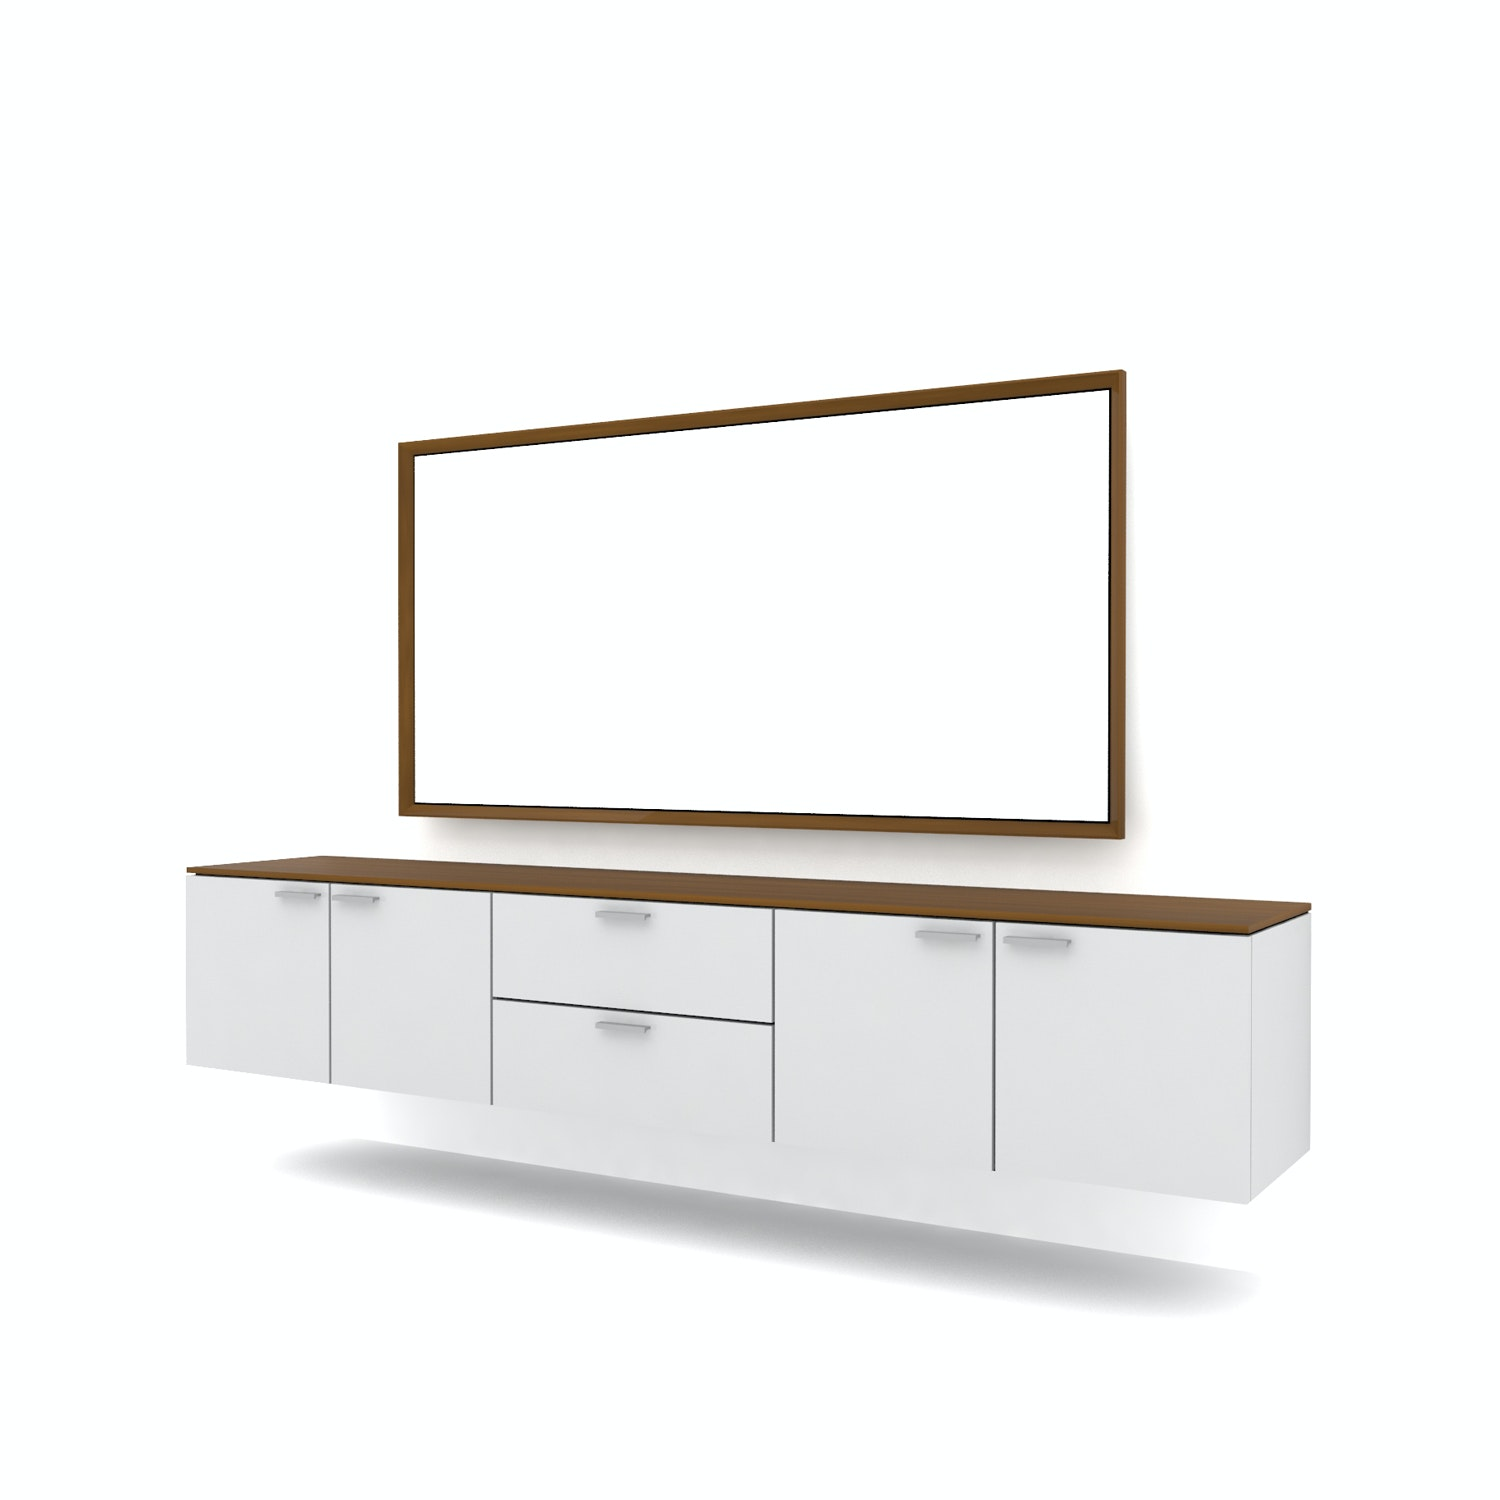 Case Furniture TV Cabinet with Wall Panel PCI004-05-MR1606 Desert Oak - Dark Grey